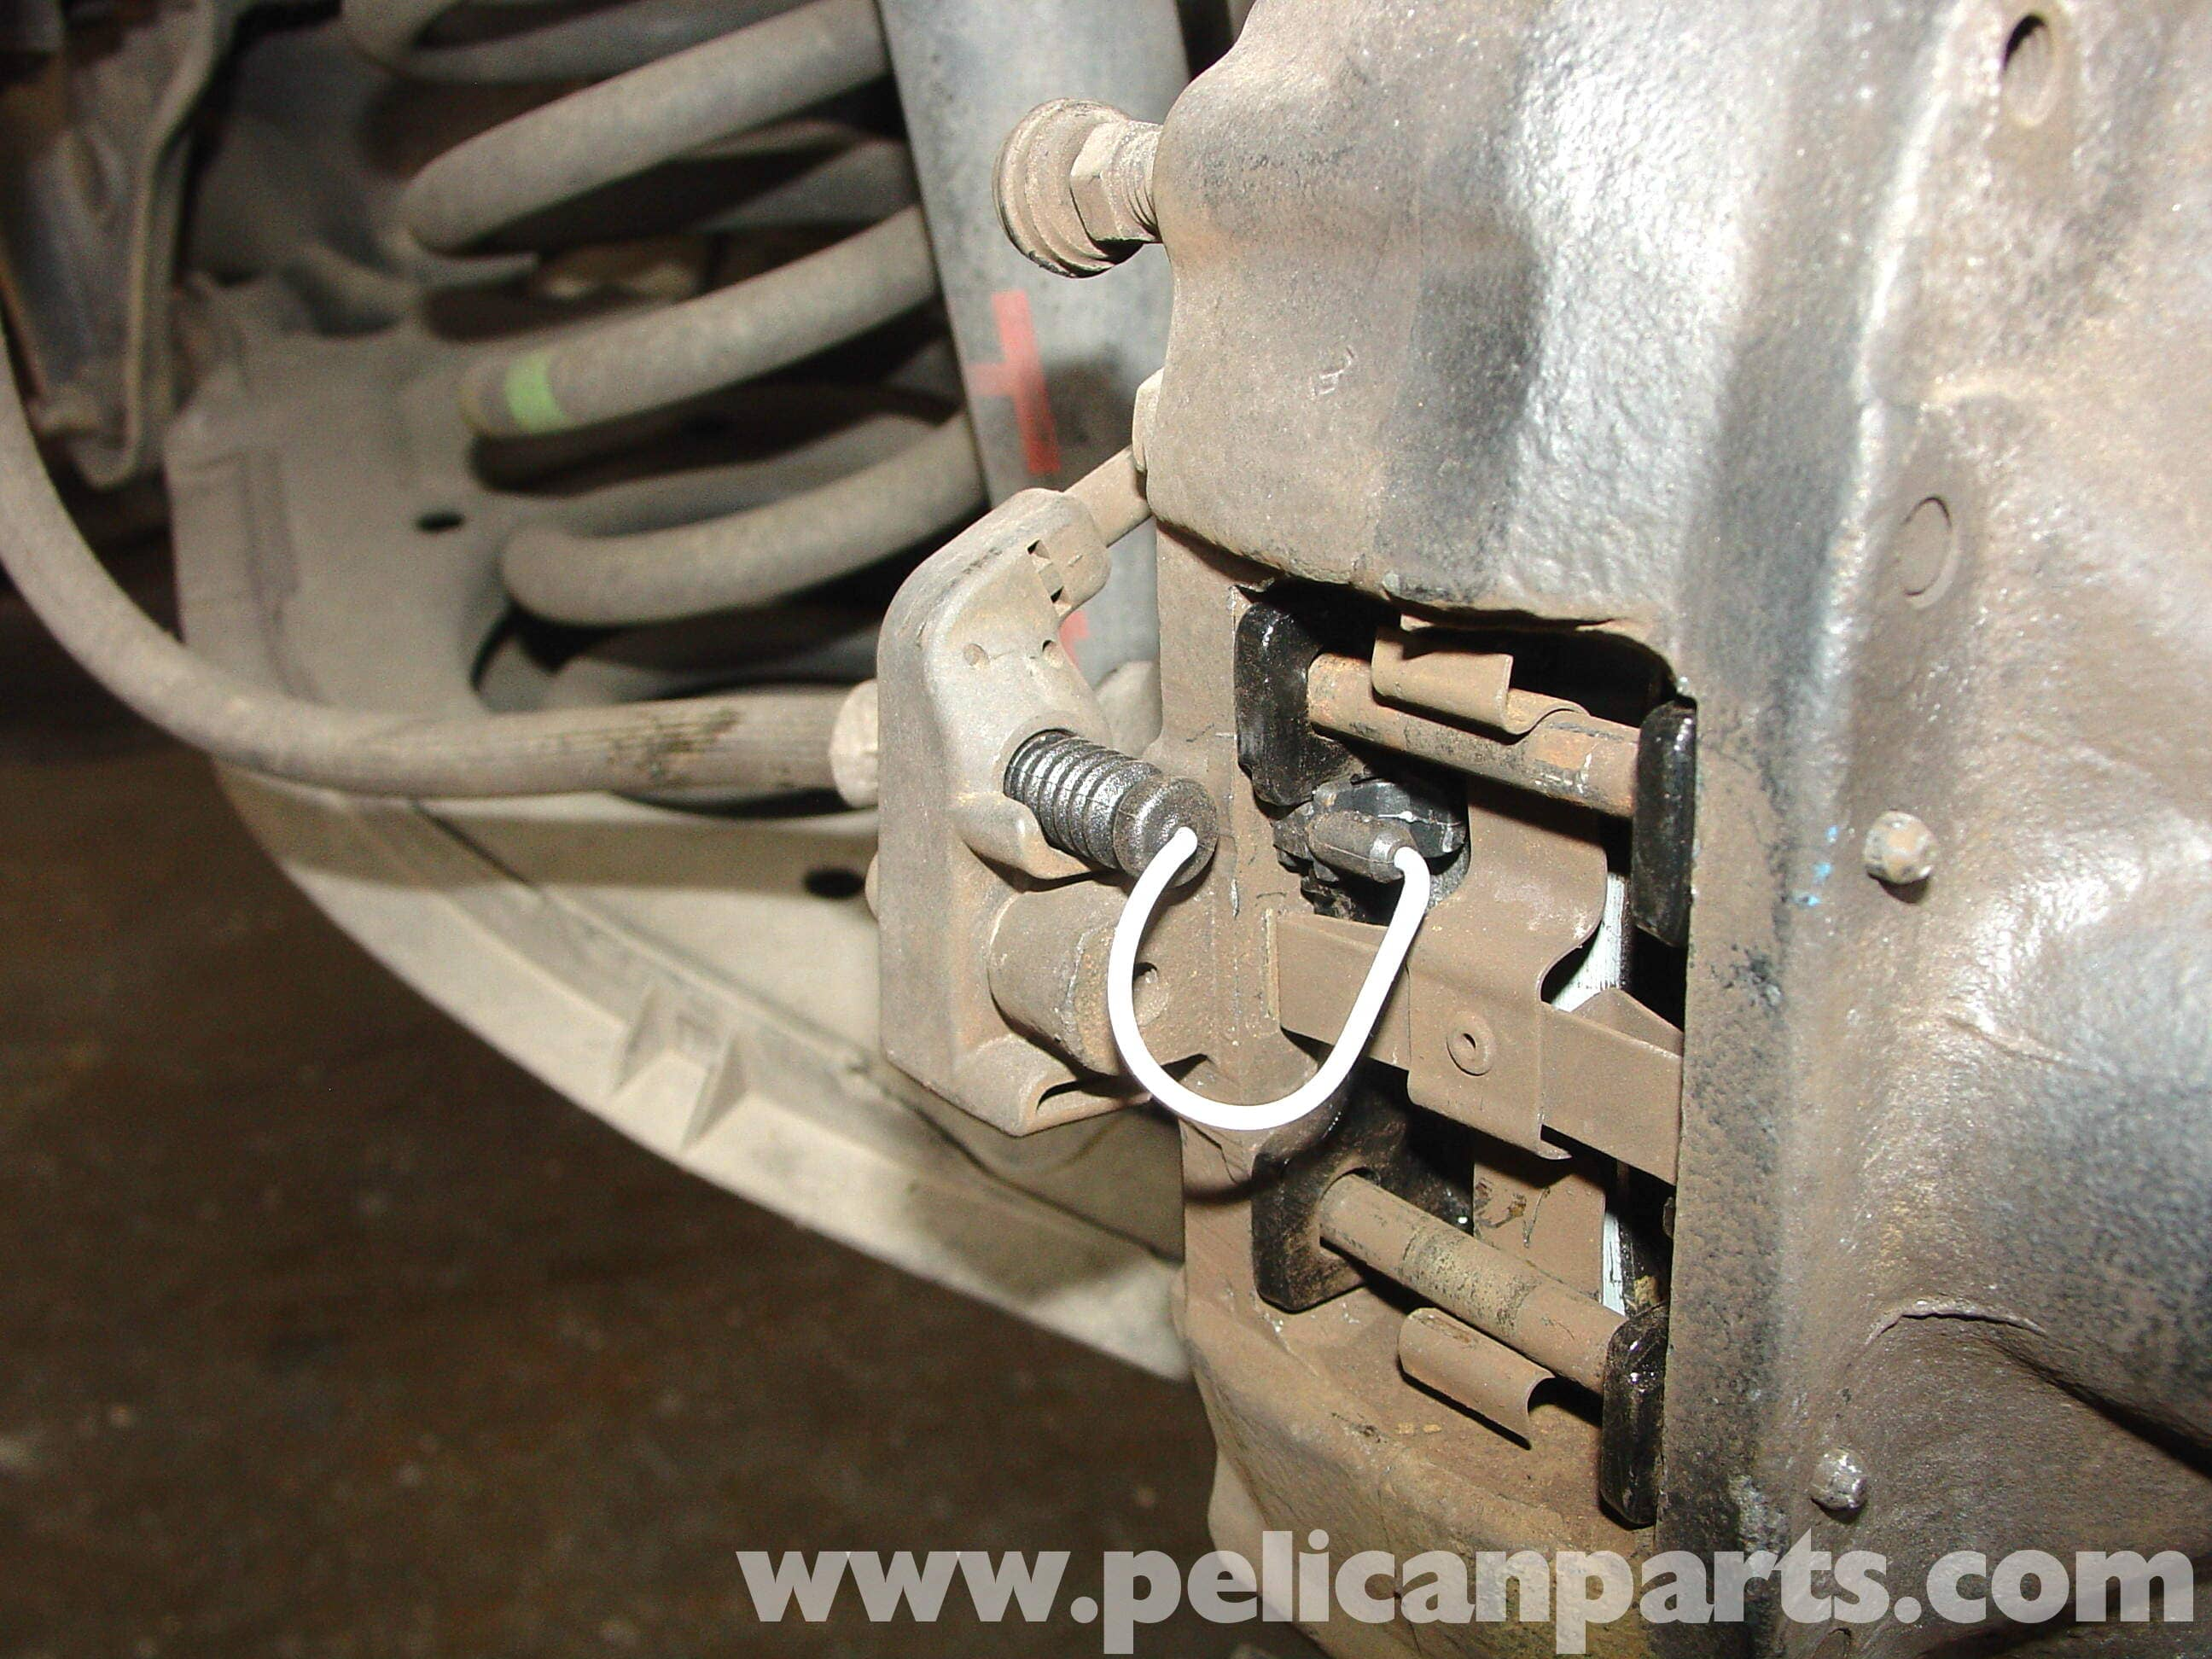 Mercedes benz w210 rear brake pad disc replacement 1996 for Mercedes benz rotors and pads